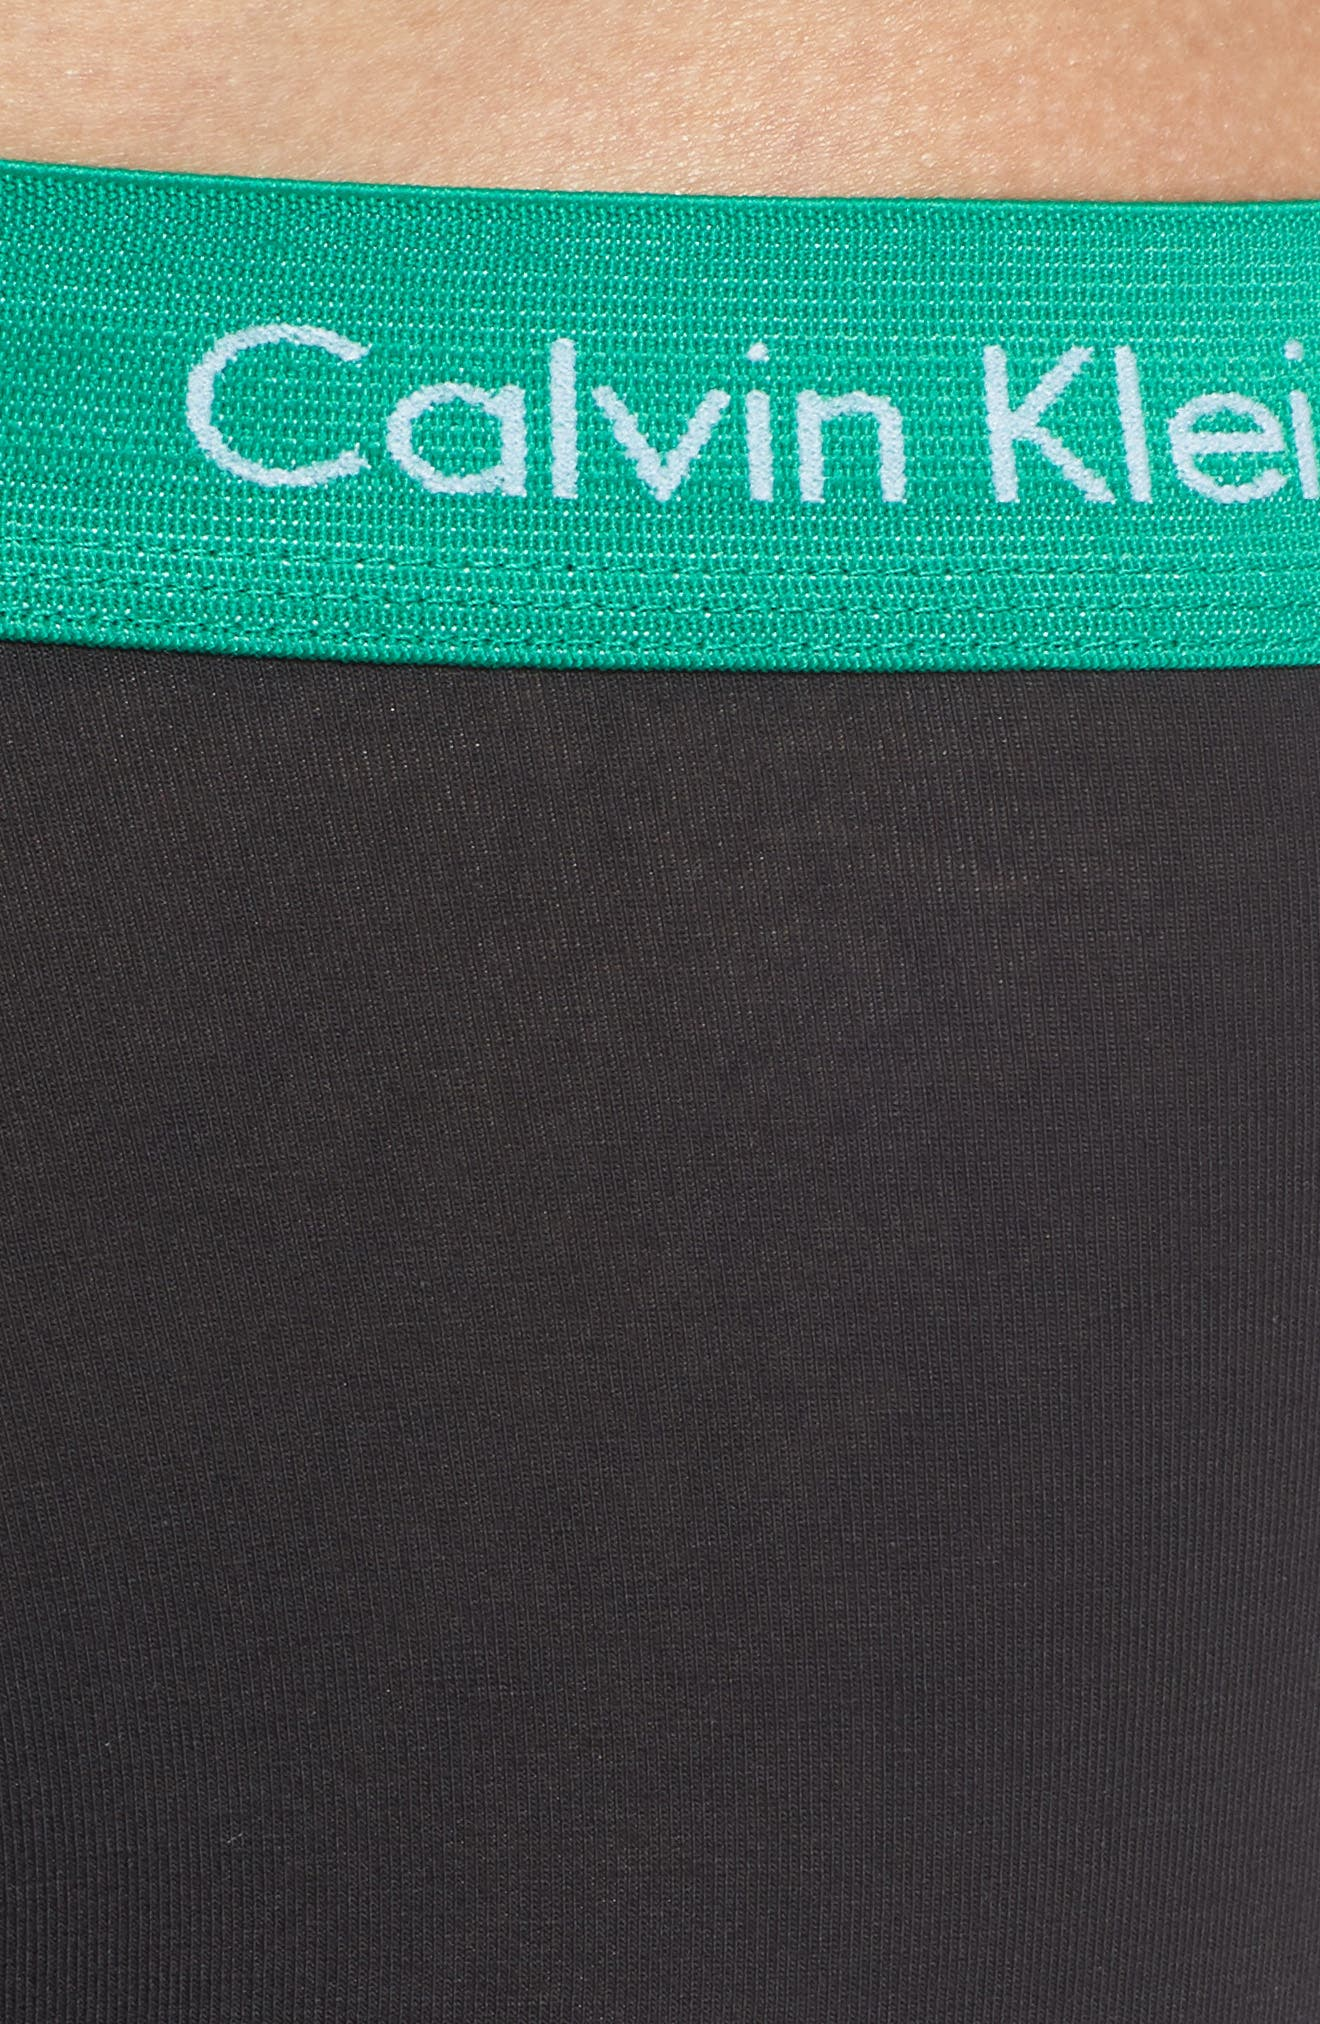 CALVIN KLEIN, 3-Pack Stretch Cotton Low Rise Trunks, Alternate thumbnail 5, color, 006